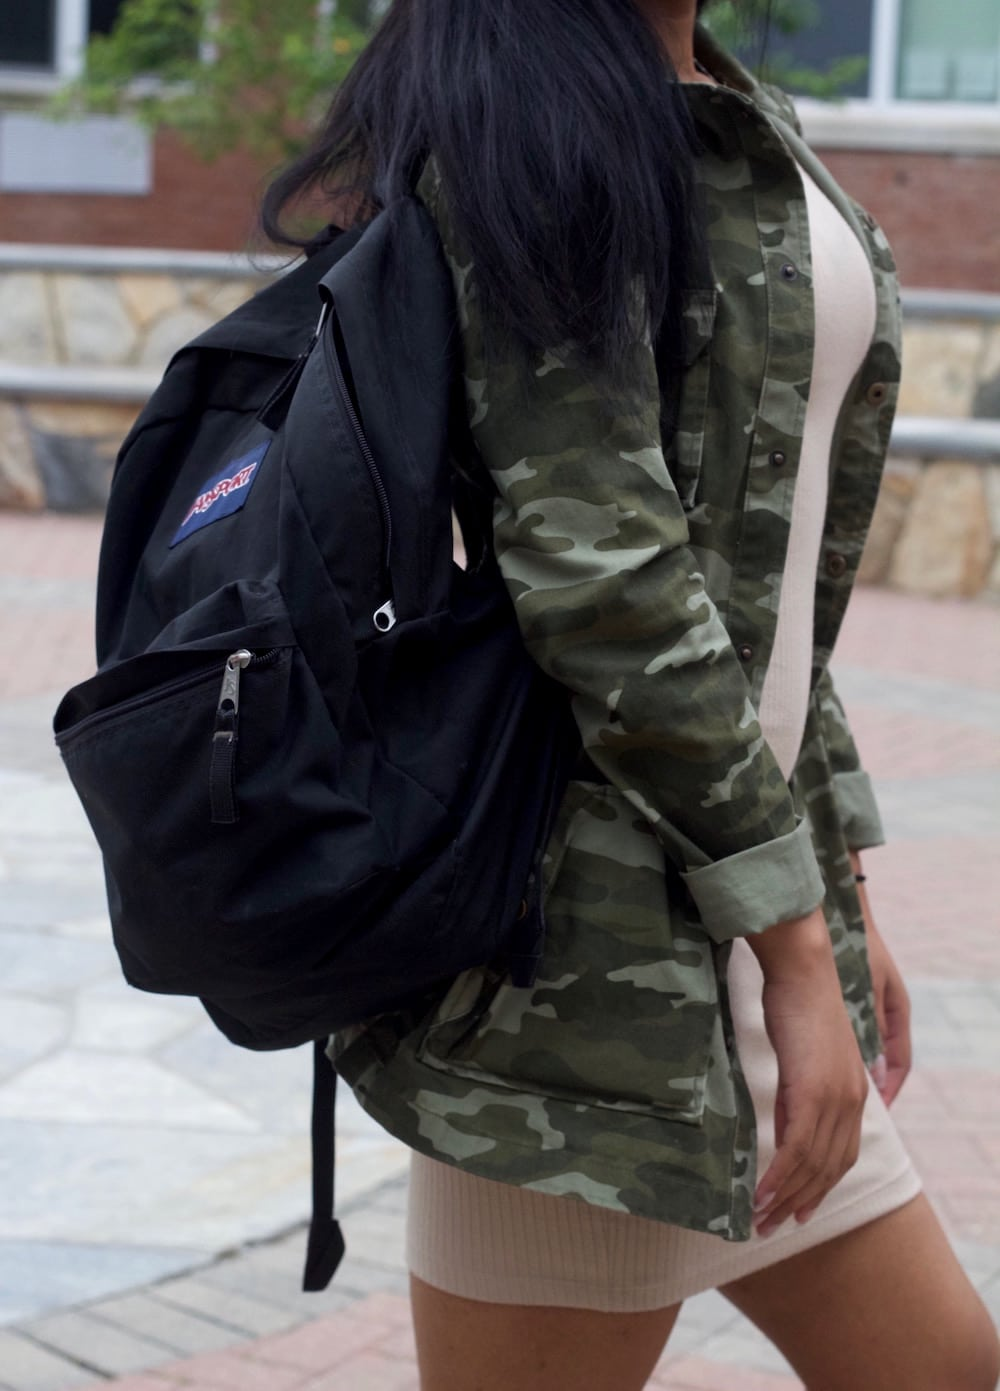 Mix and match: student totes around a black carryall Jansport backpack with her camouflage rain jacket and beige mini dress.